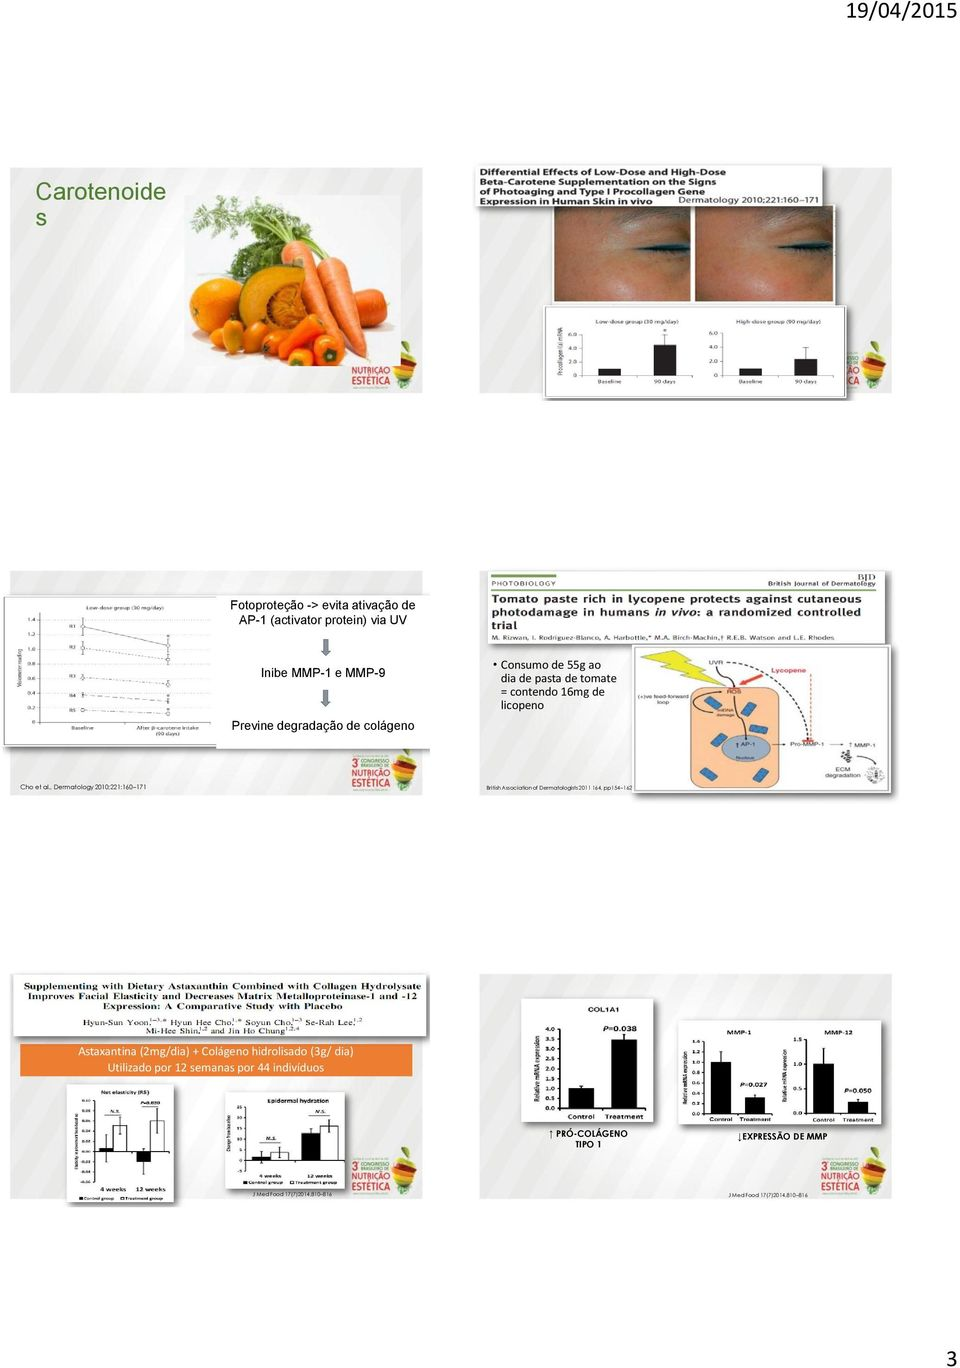 , Dermatology 2010;221:160 171 British Association of Dermatologists 2011 164, pp154 162 Astaxantina (2mg/dia) + Colágeno